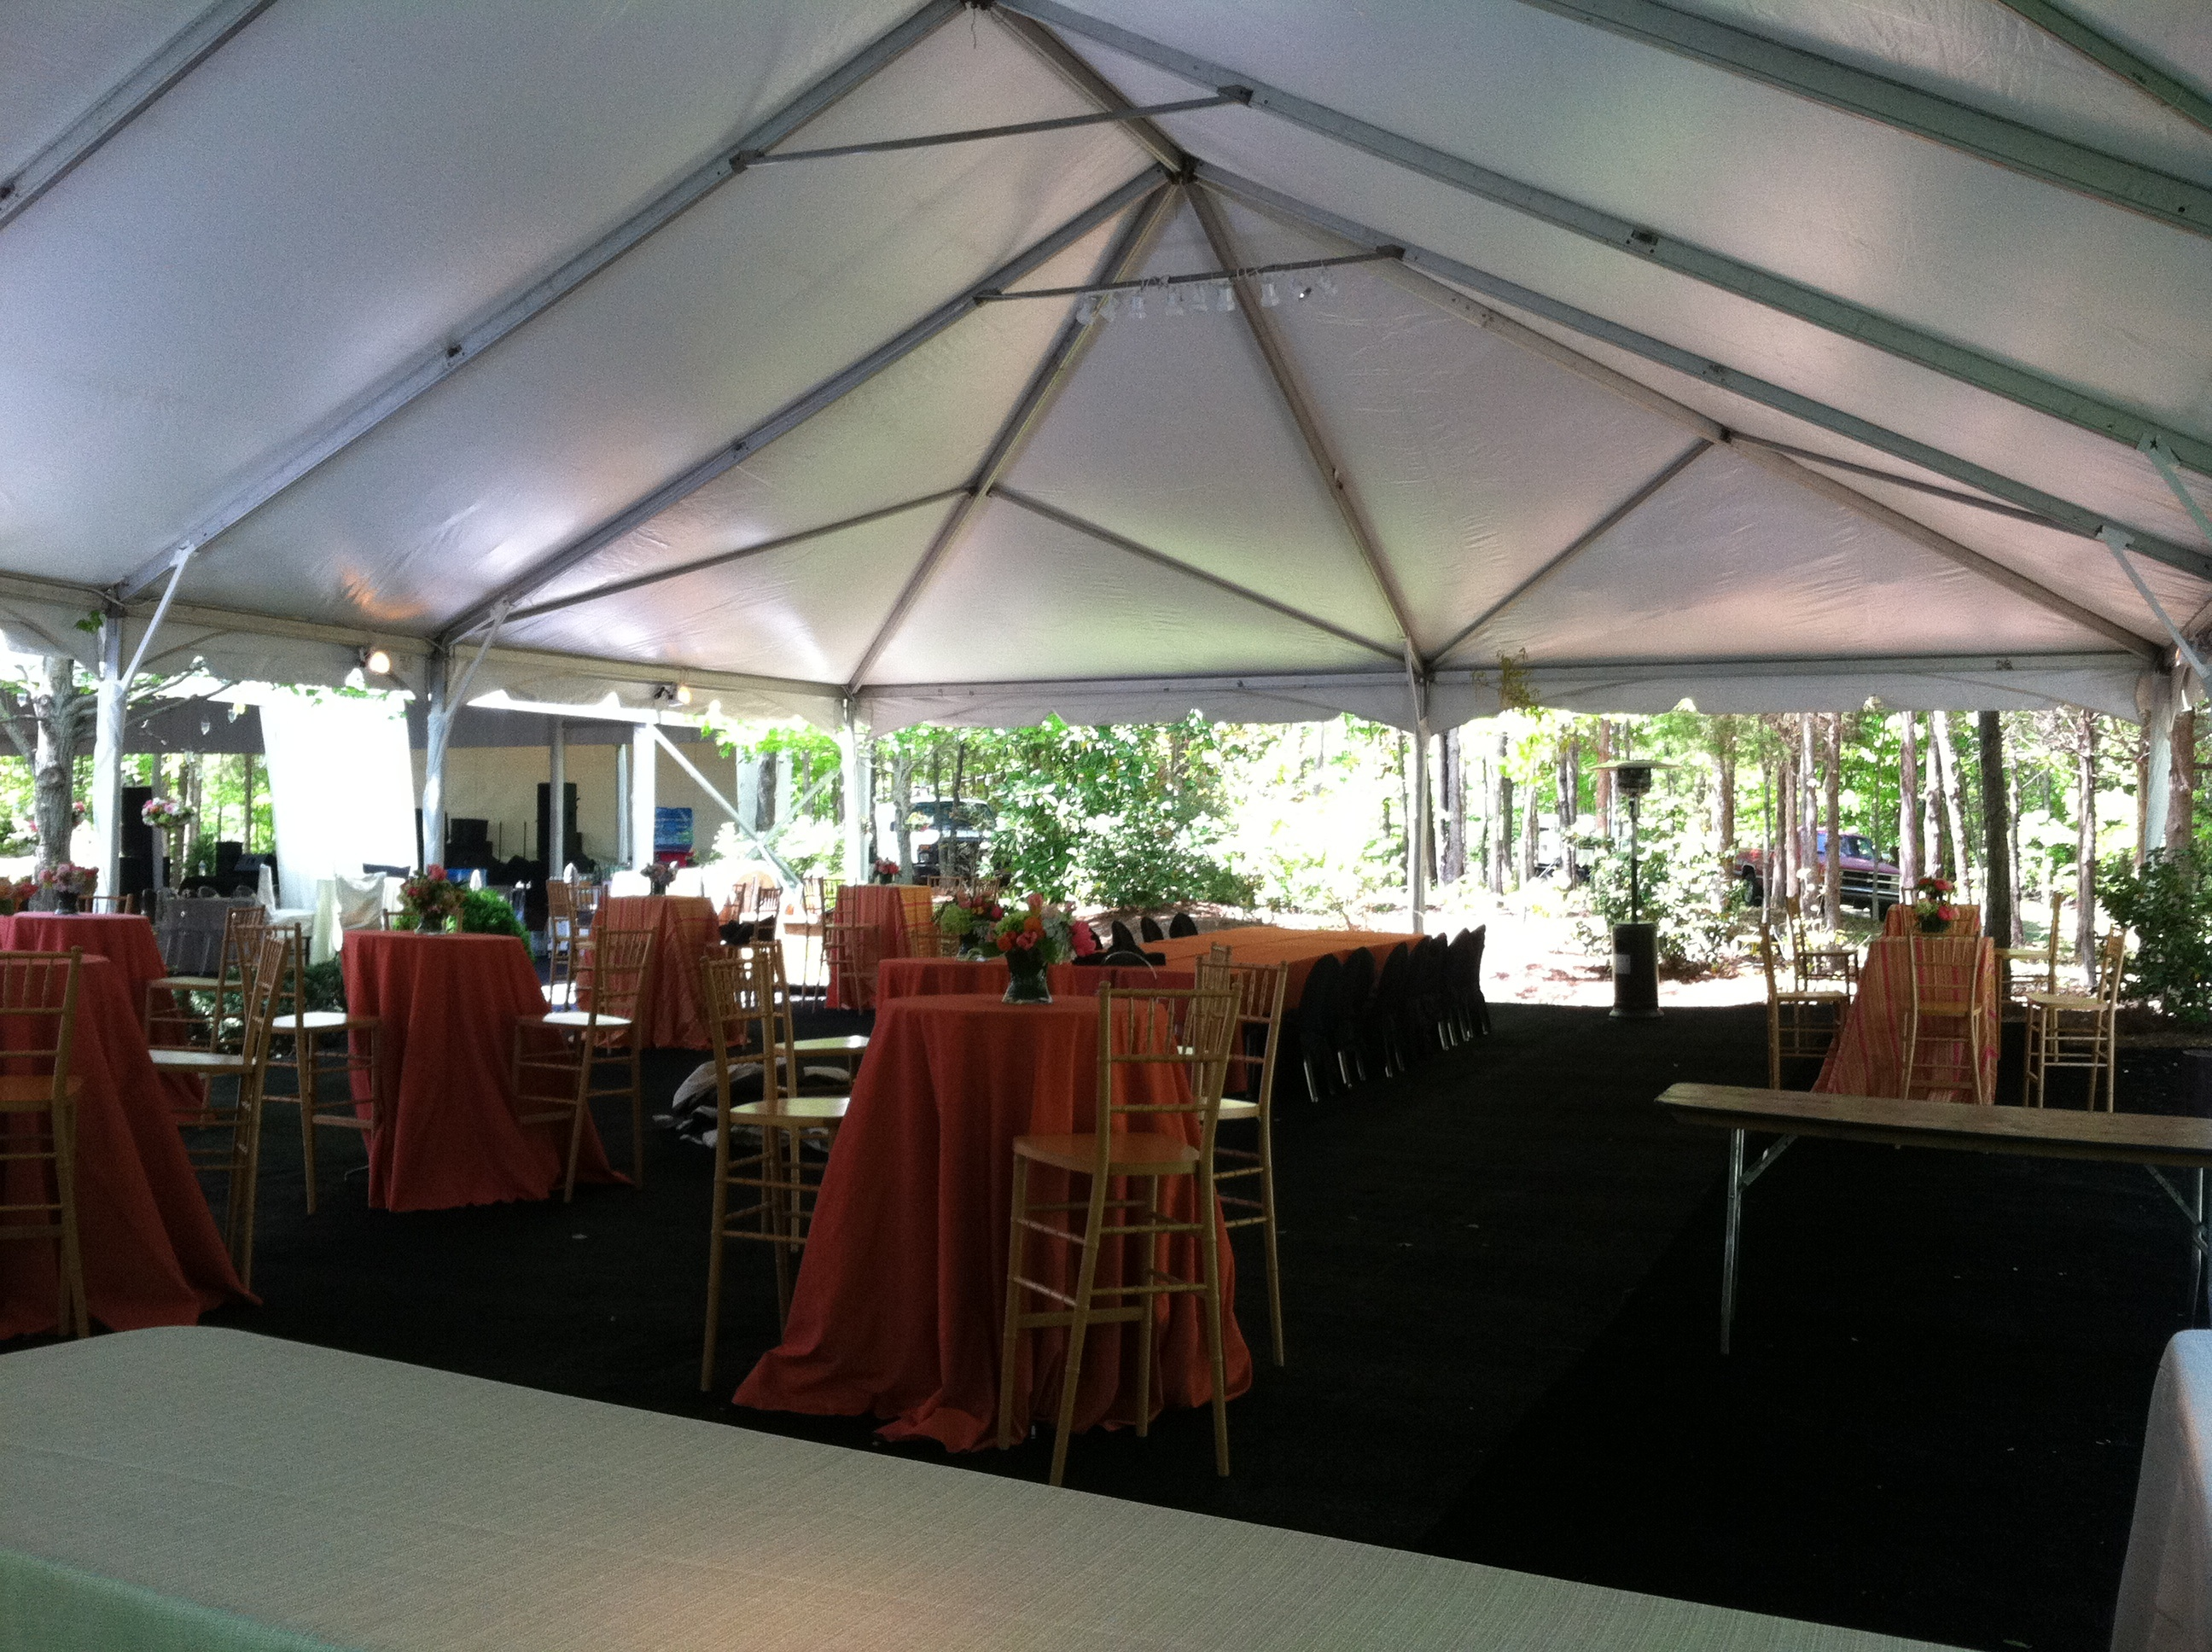 tables and chairs set up under tent for wedding reception